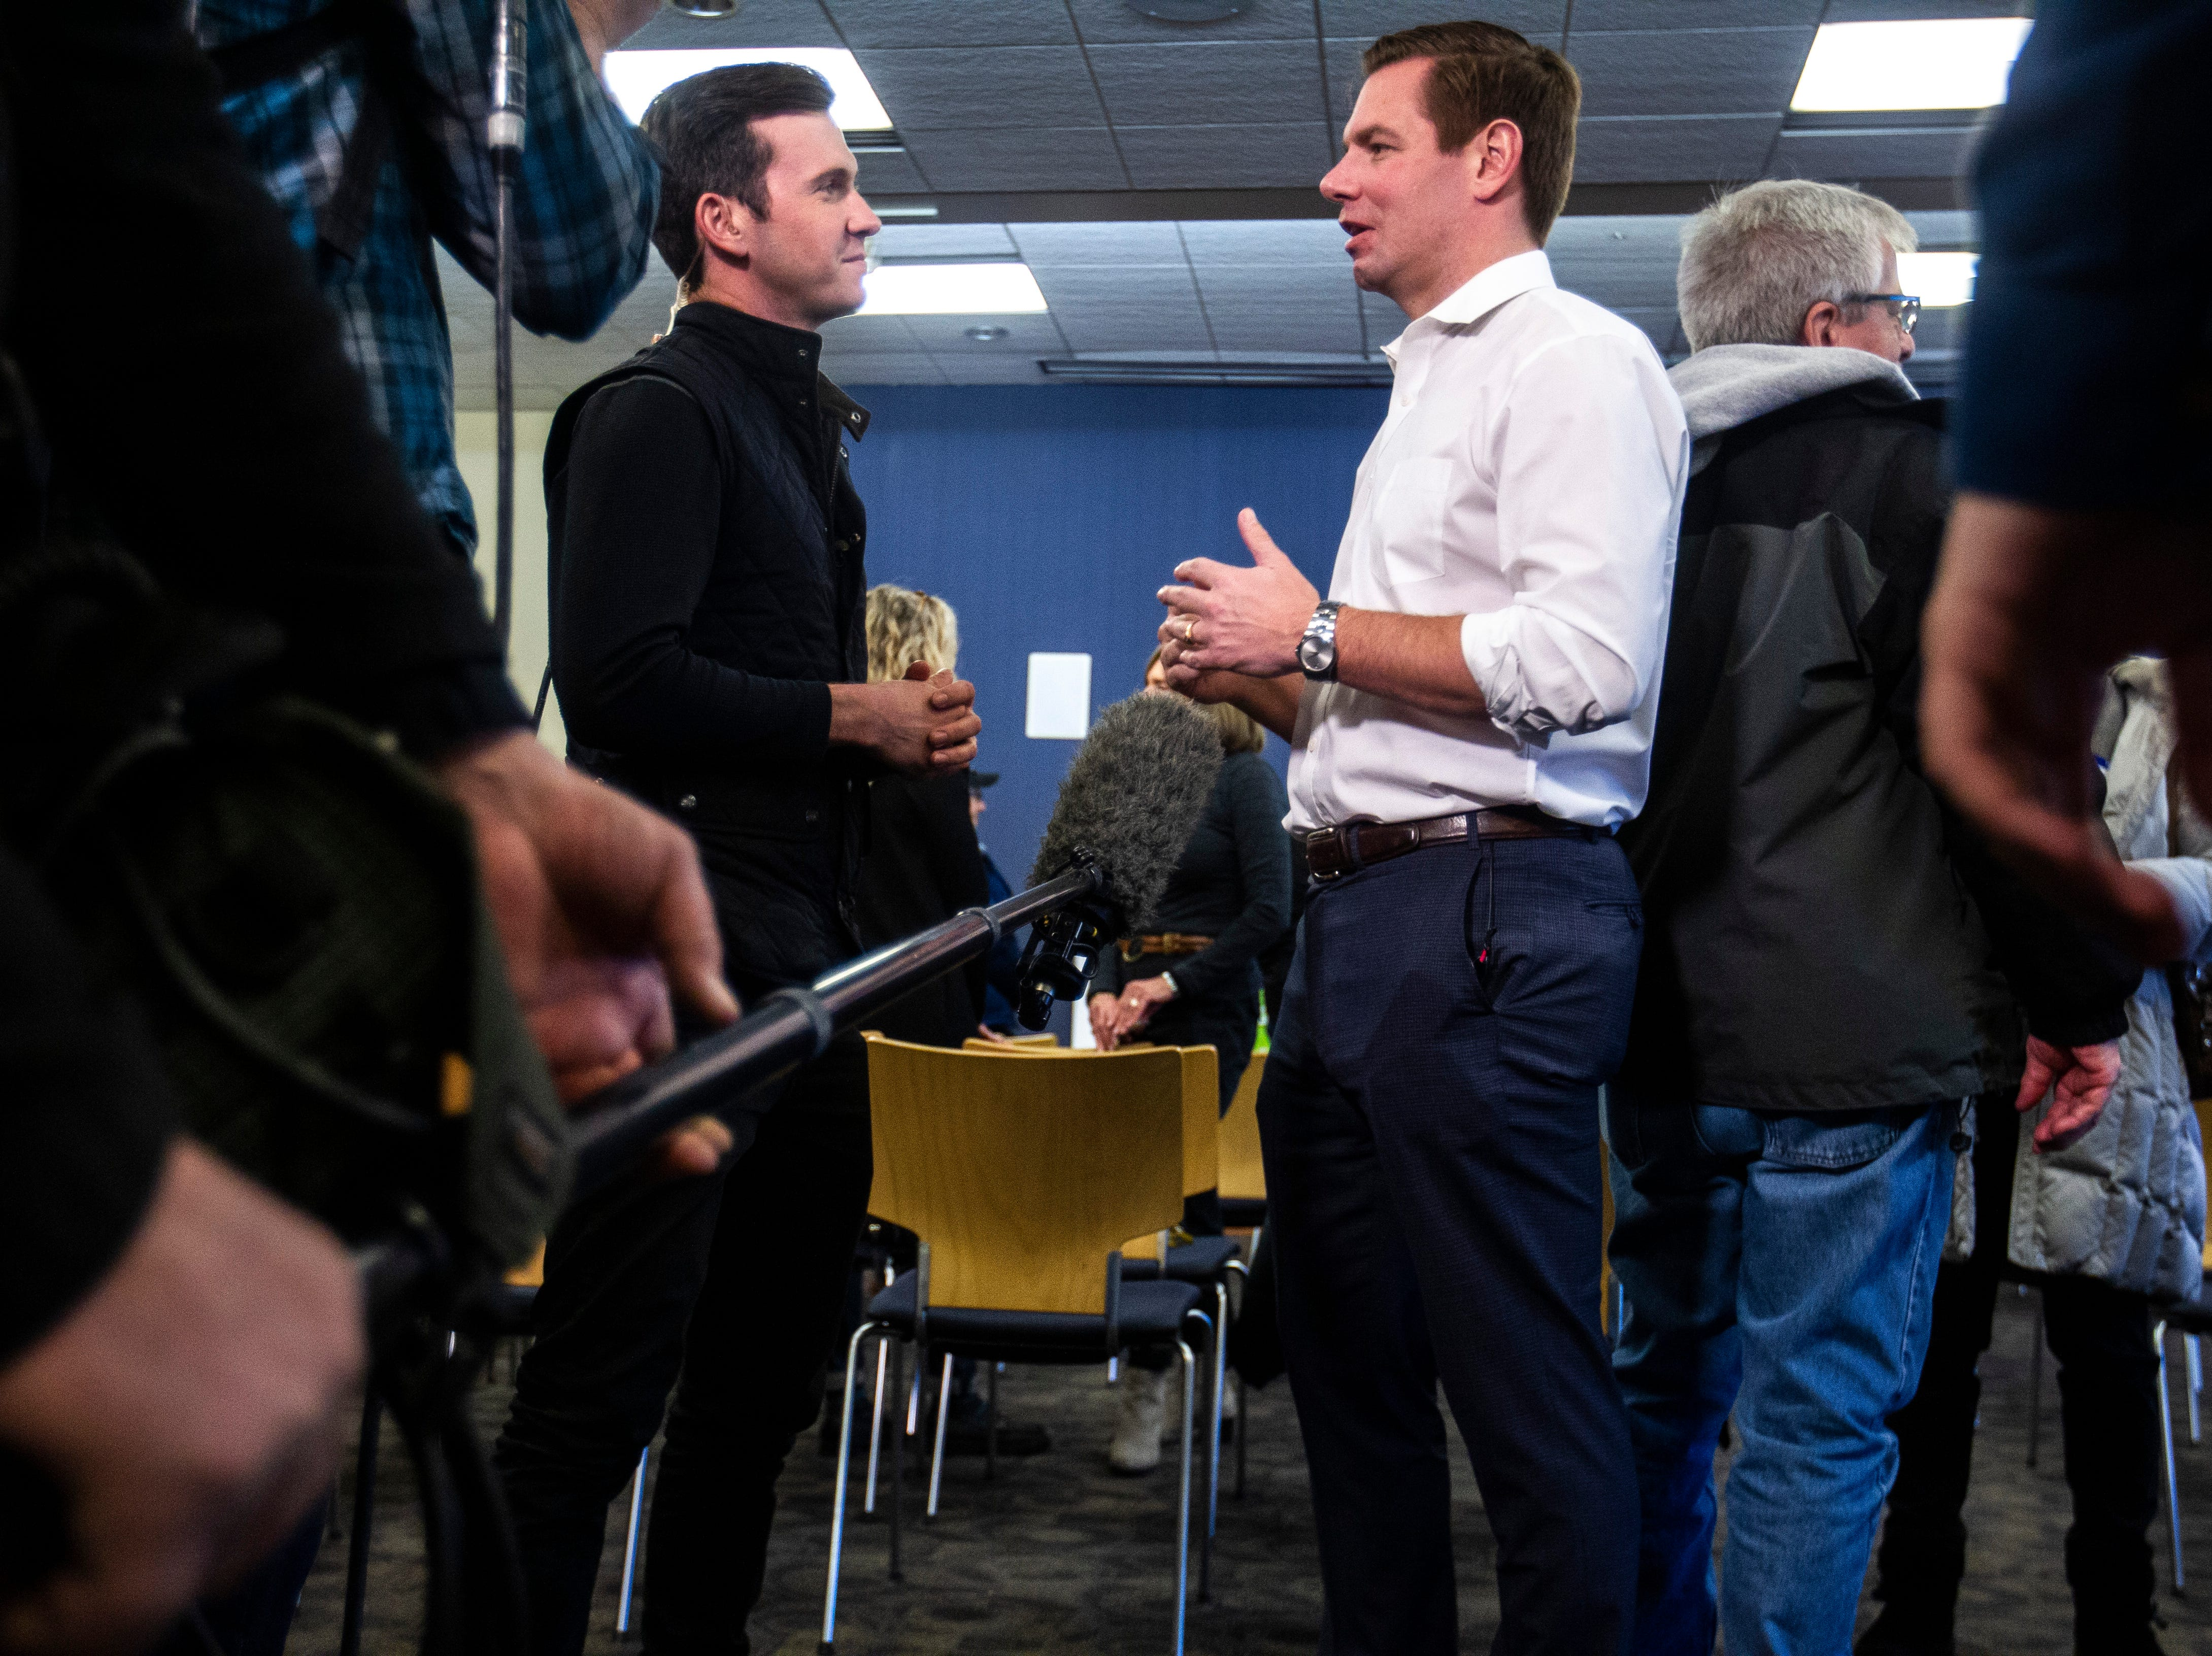 U.S. Rep. Eric Swalwell, D-Calif., speaks during an interview with MSNBC after a Working Hero Iowa event on Monday, Feb. 18, 2019 at the Public Library in Iowa City, Iowa.